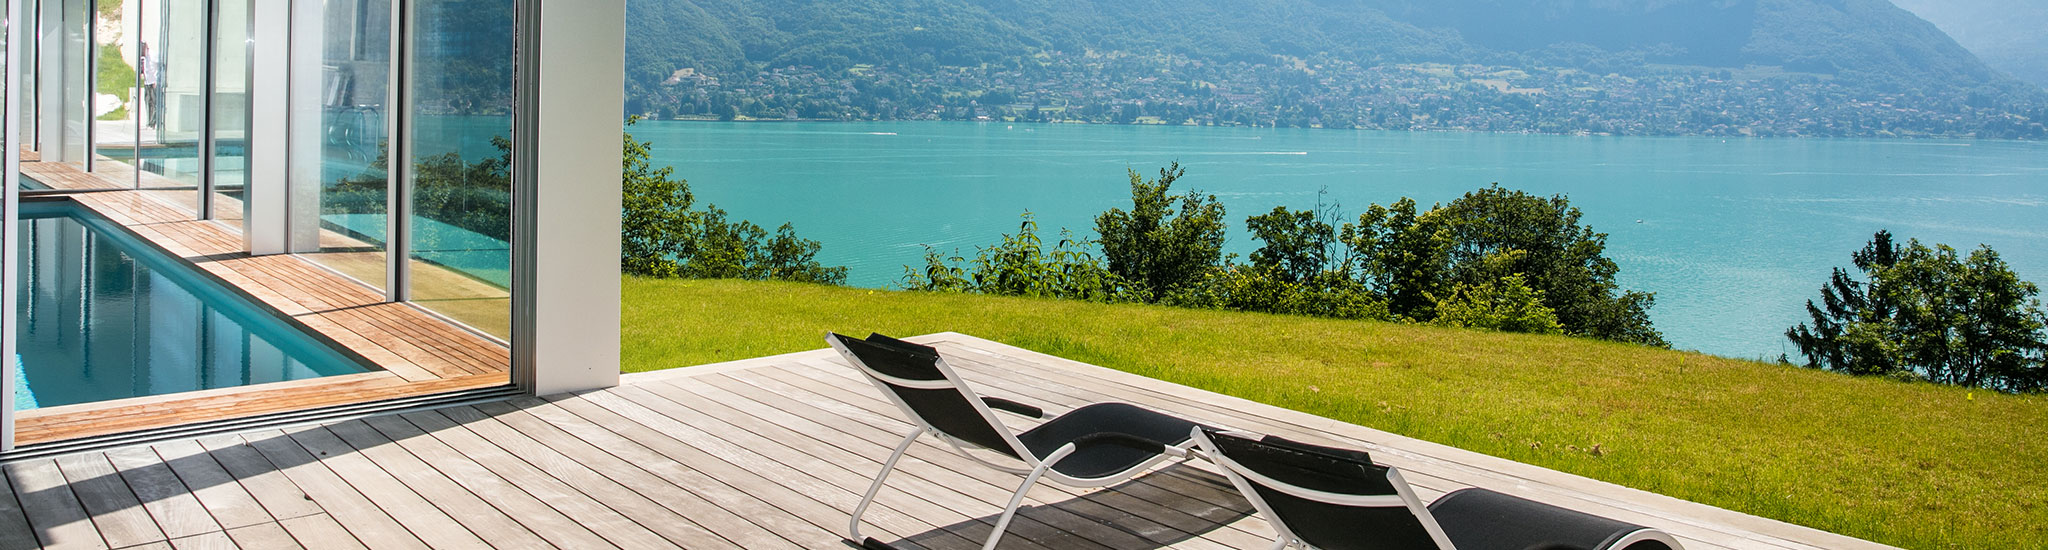 ANNECY - 74000